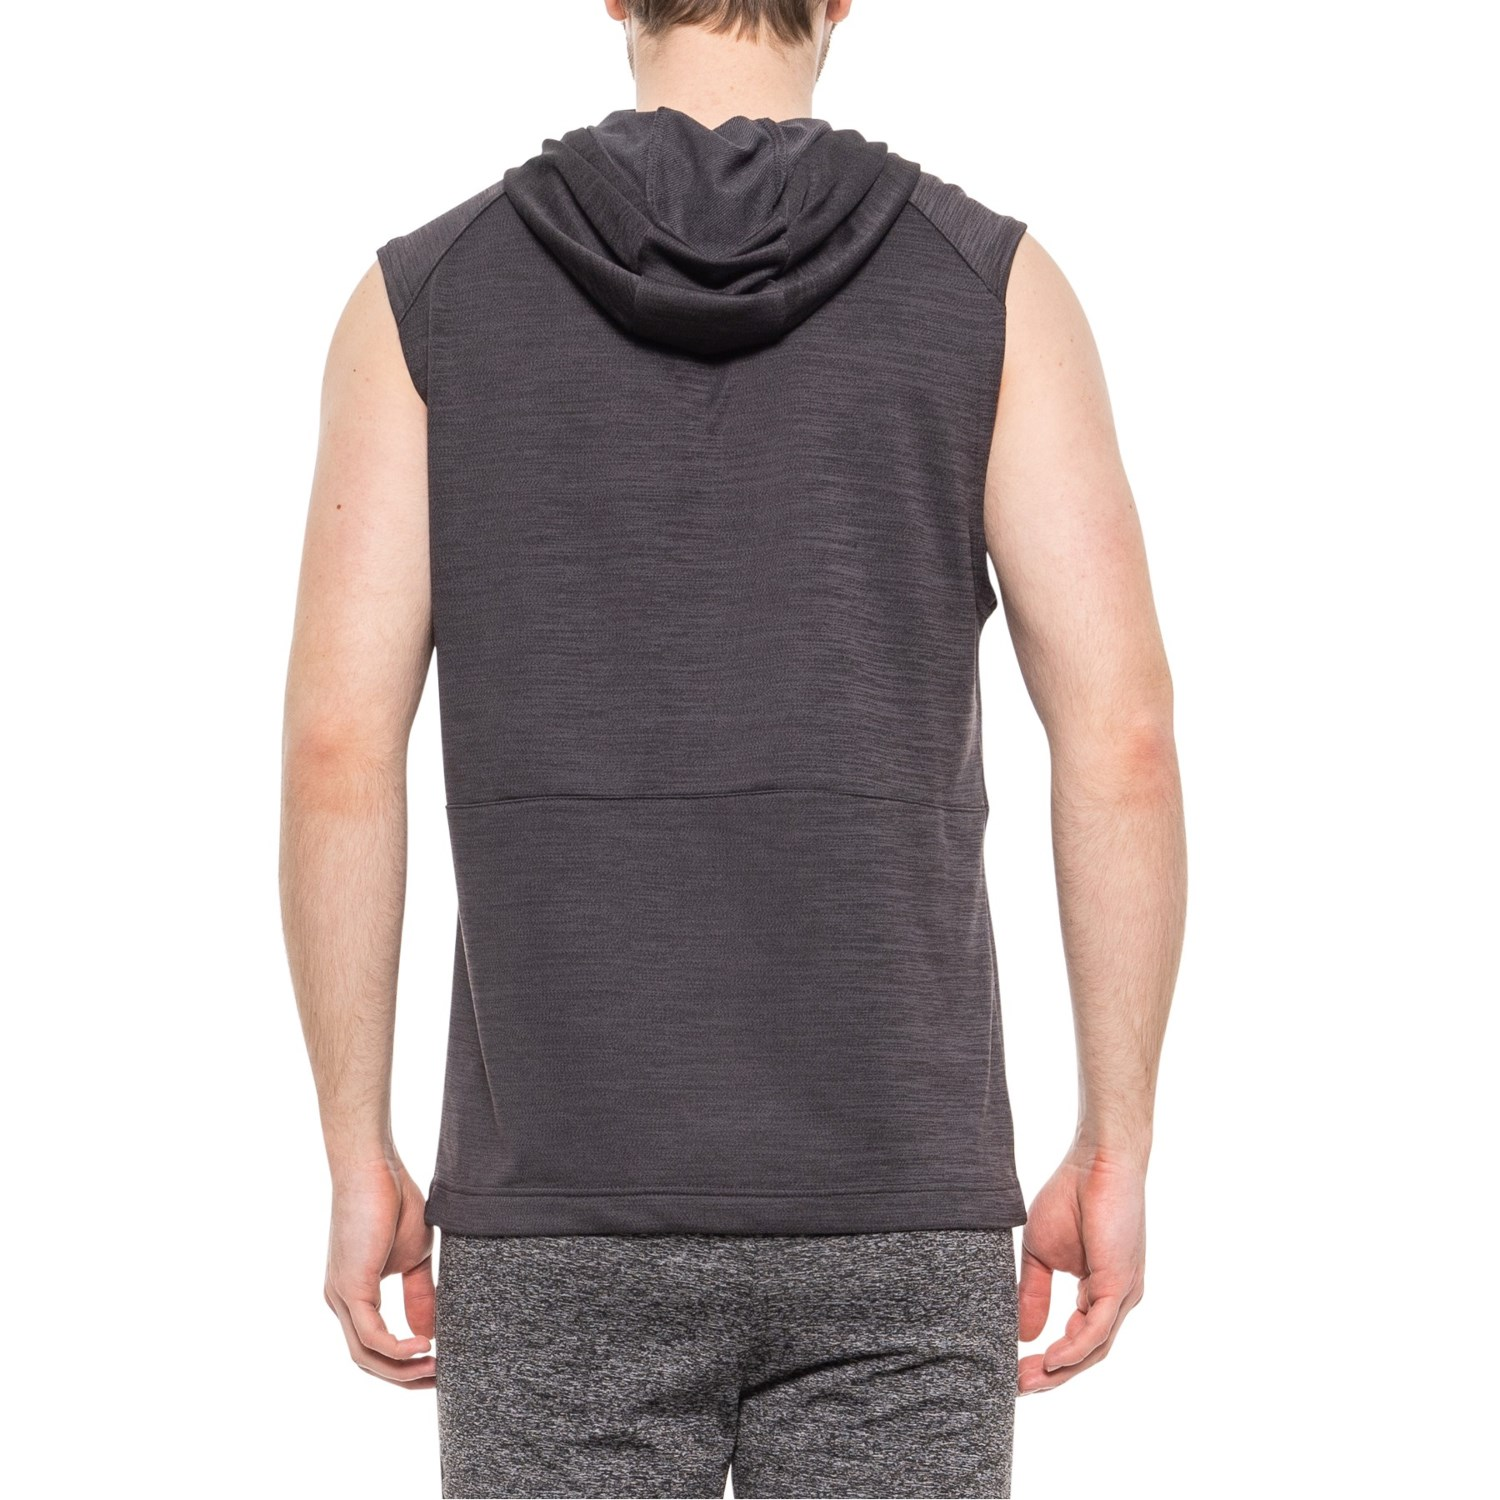 1b2a33cbeea81 ... Obsidian Heather 696MU_2 Apana French Terry Hoodie - Sleeveless (For  Men)